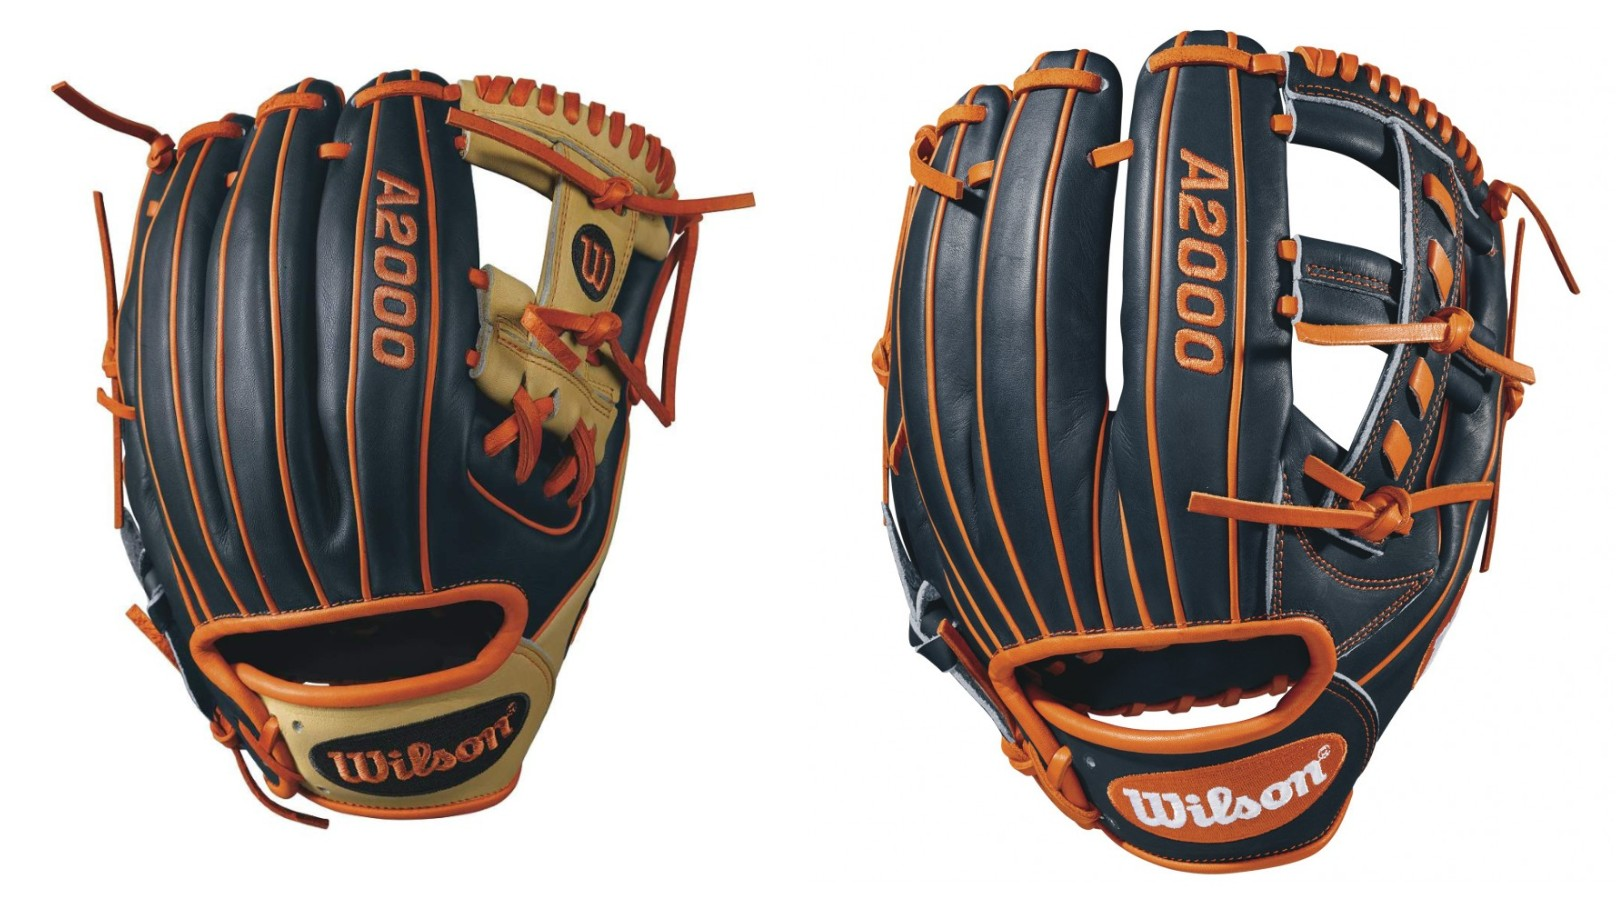 Wilson a ja complete guide review ball gloves